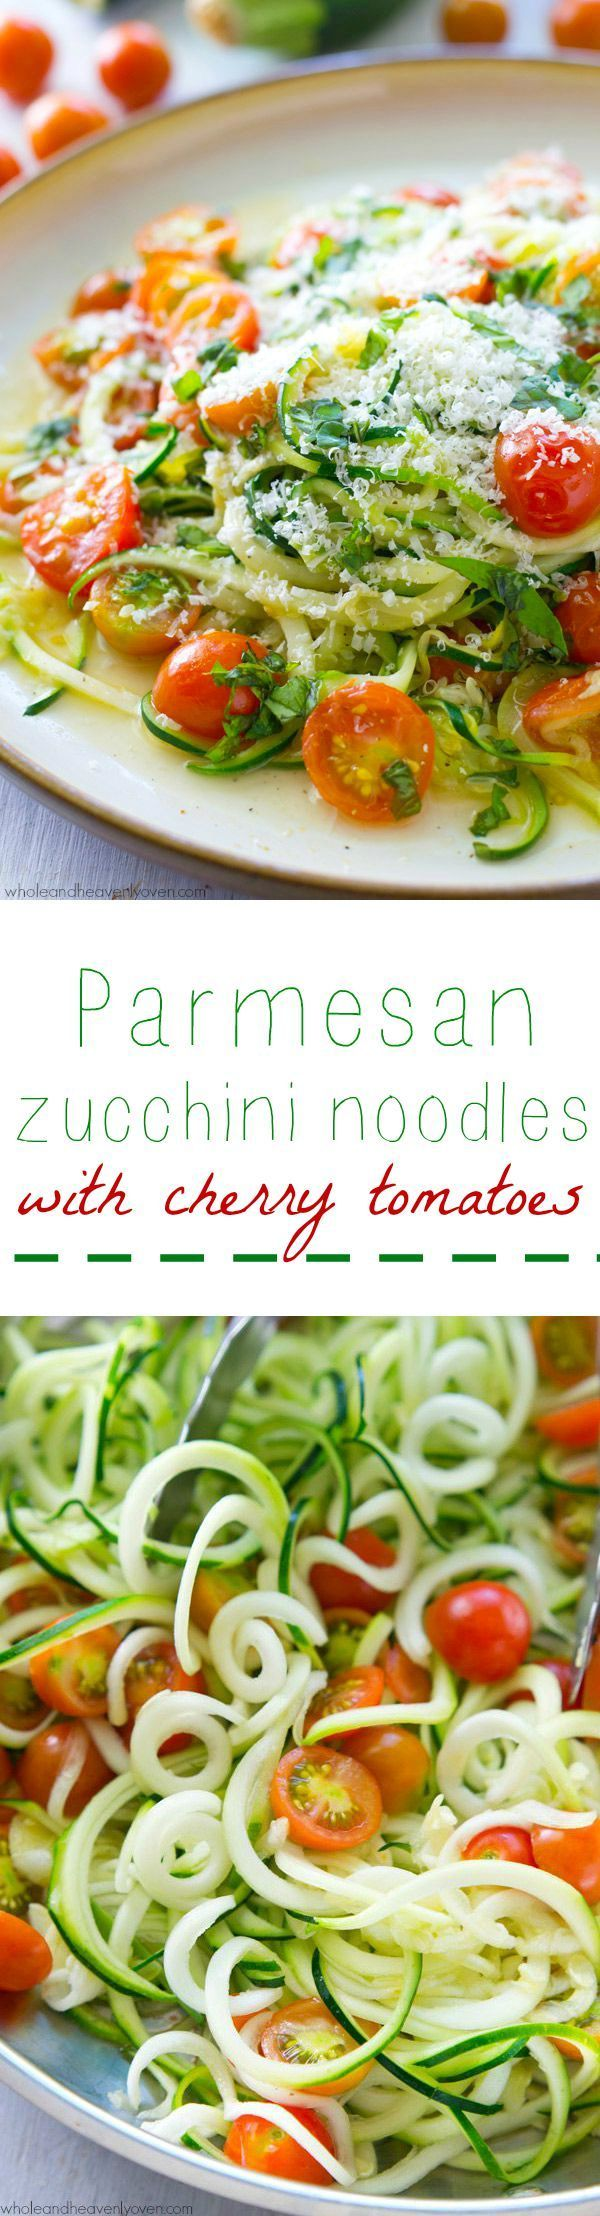 """Made in one pan in only 10 minutes and loaded with Parmesan and sweet cherry tomatoes, these zucchini """"noodles"""" are a simple and healthy vegetarian meal you'll want to make again and again! @WholeHeavenly"""